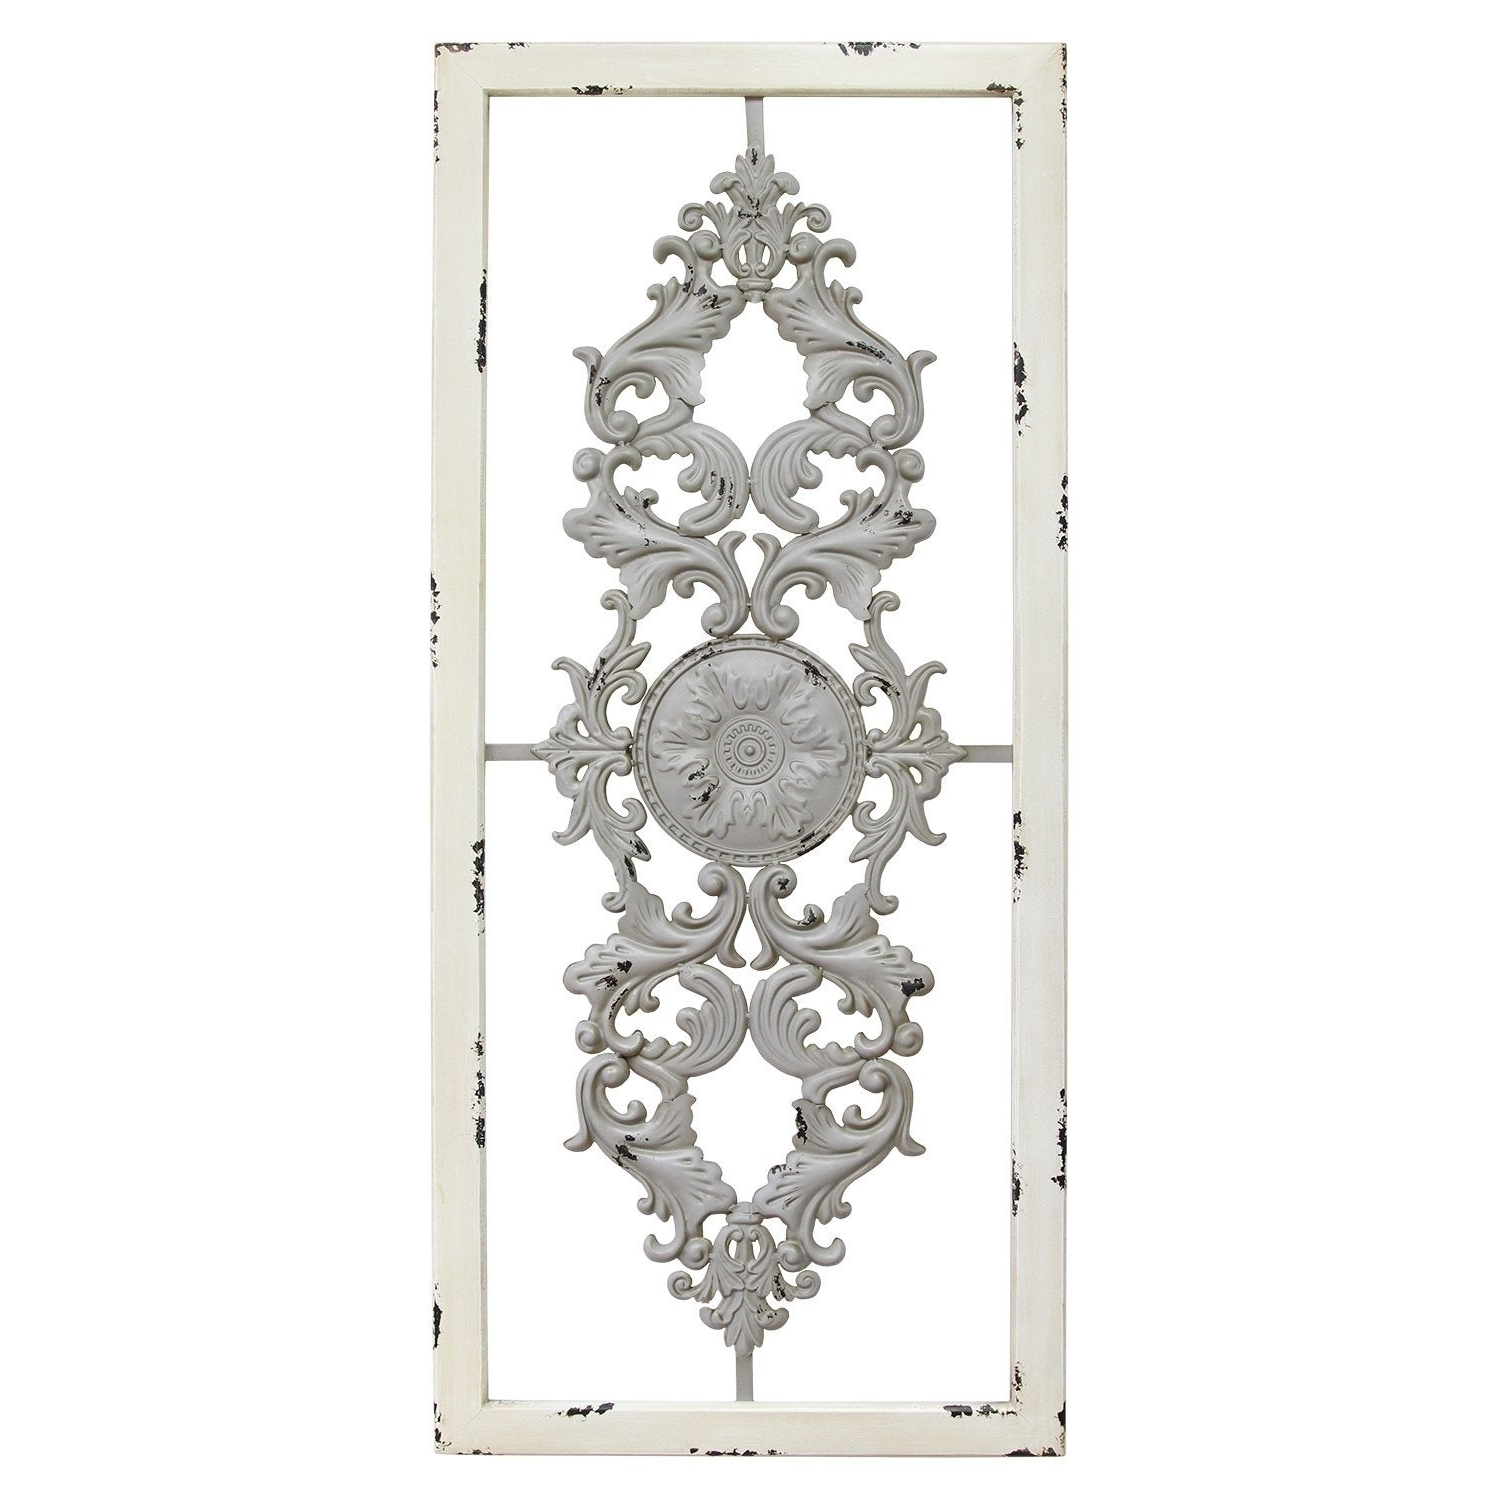 Ornate Scroll Wall Decor With Preferred Ornate Scroll Panel Grey Wall Decor White Frame 36X16 Metal Wood (View 12 of 20)